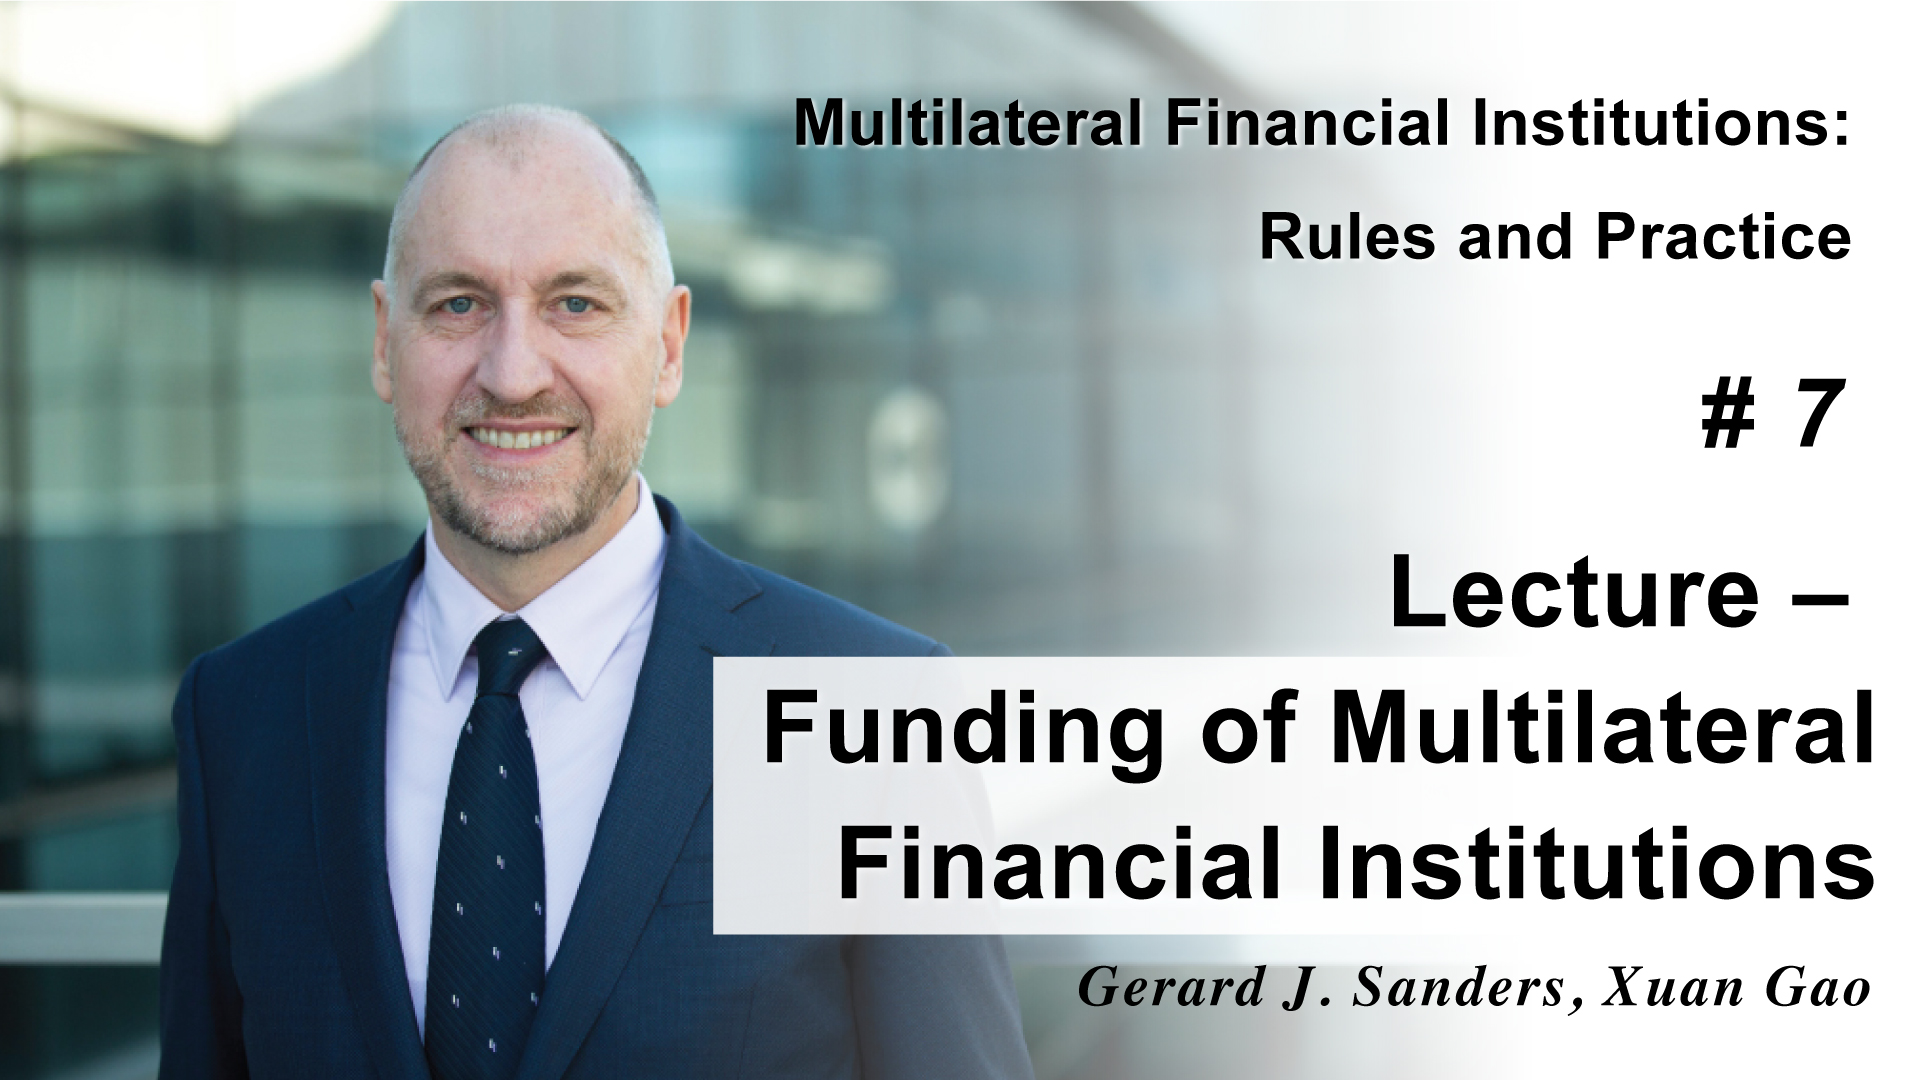 Lecture - Funding of Multilateral Financial Institutions